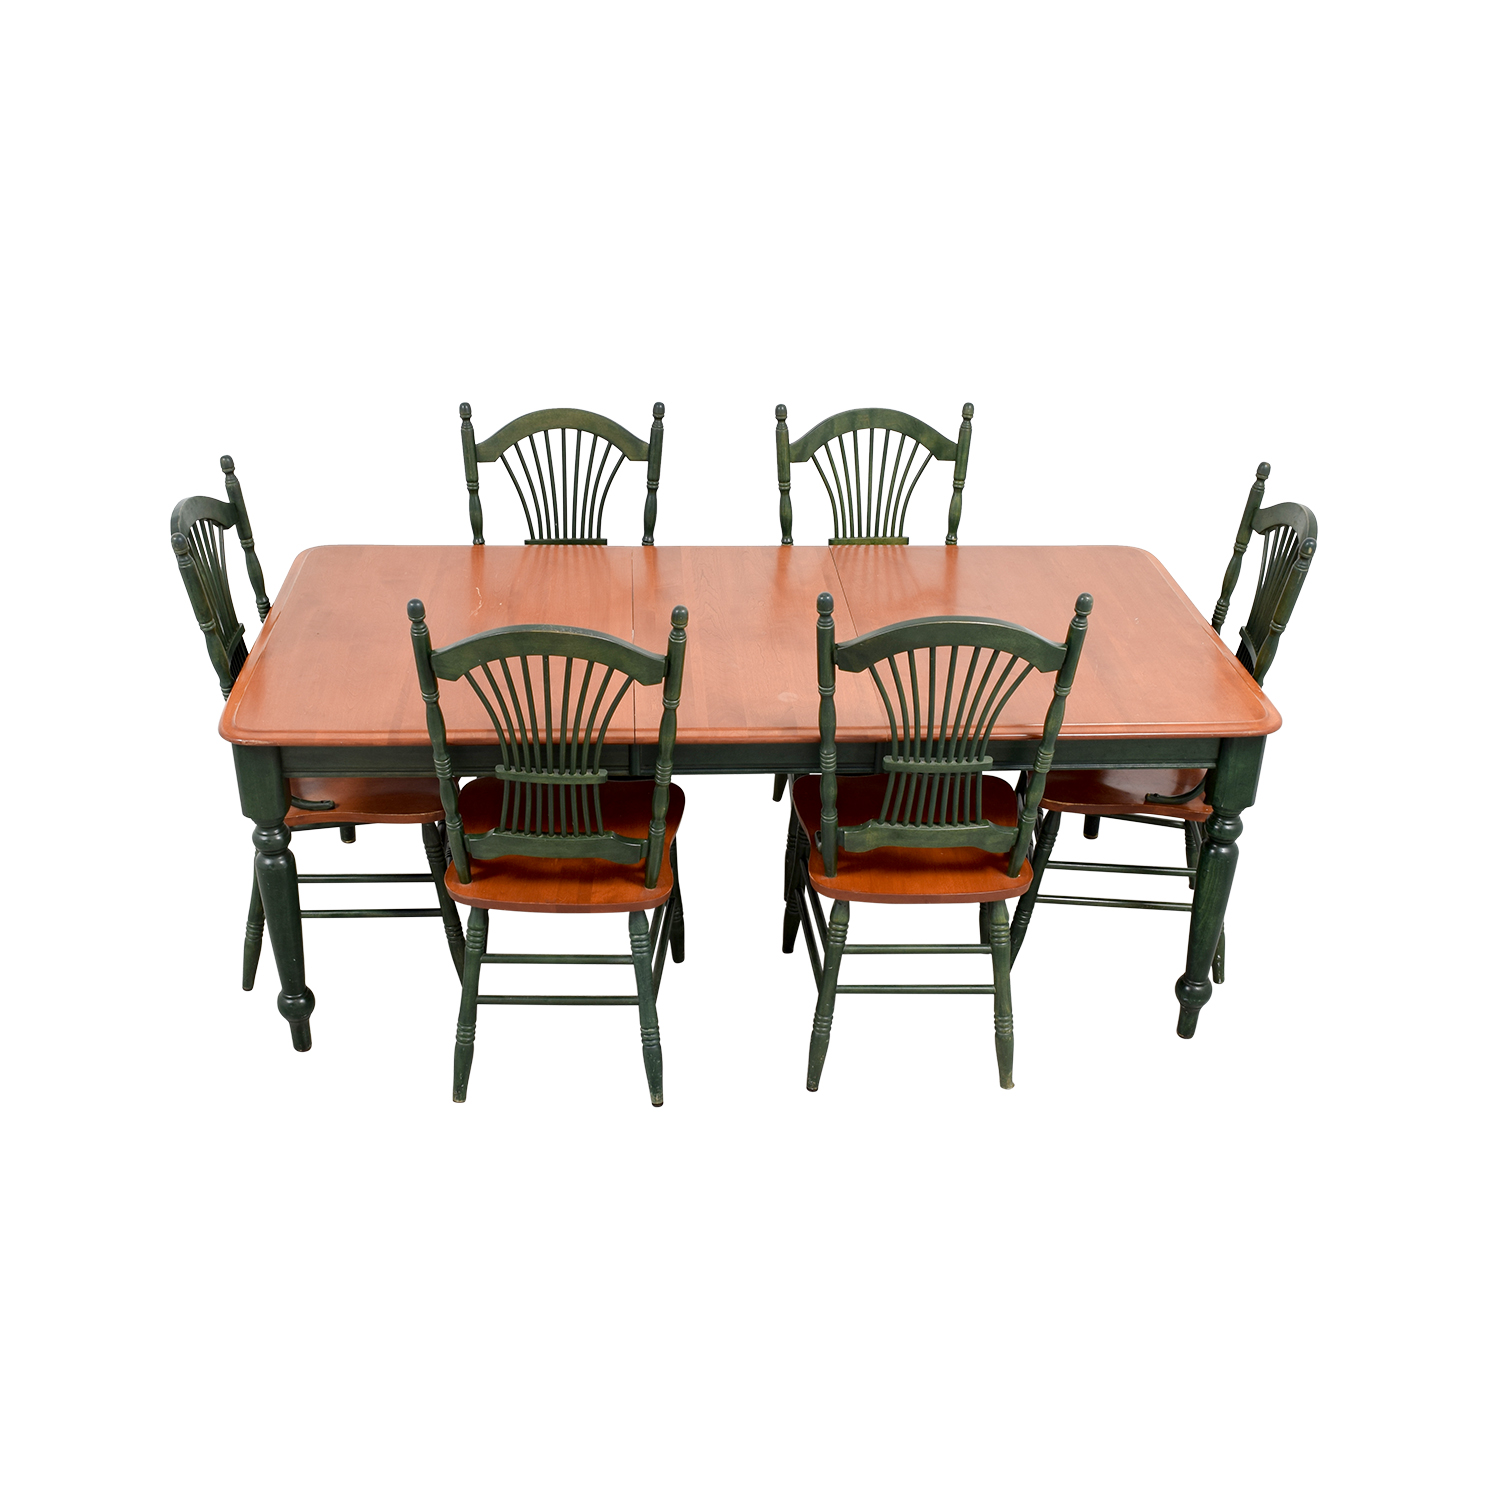 Dining Table with Extension Leaf and Green Chairs sale